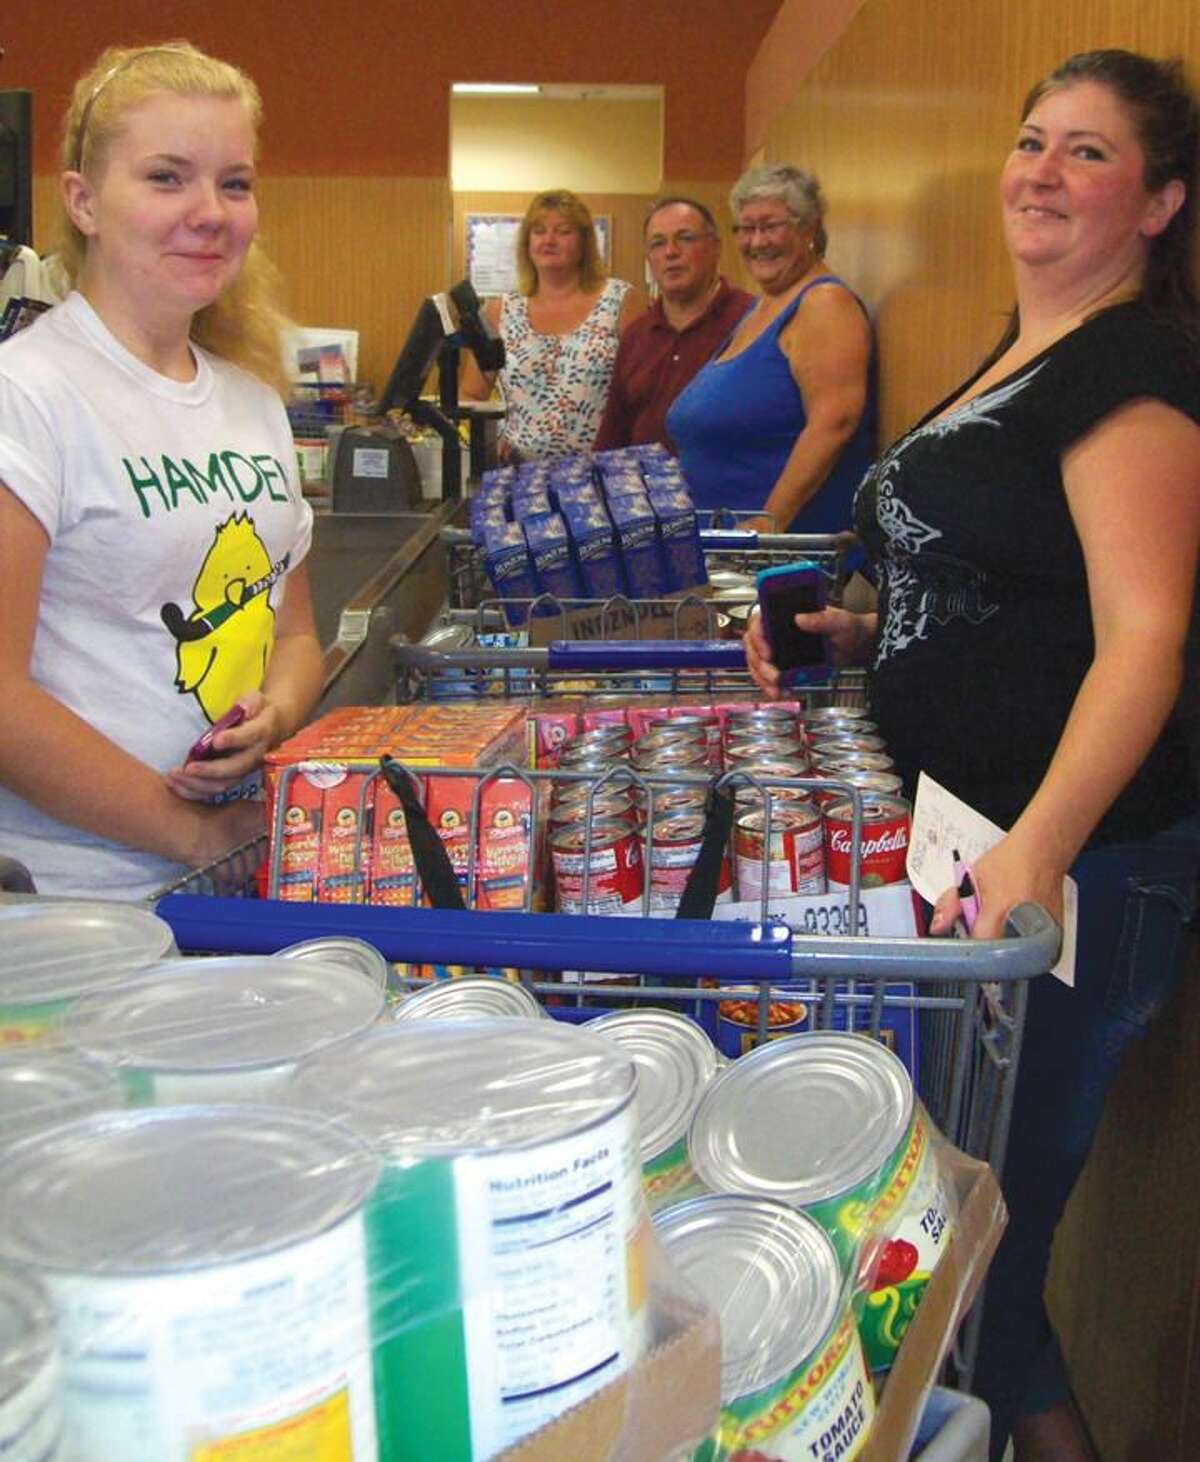 Submitted Photo Pictured are Lodge Members Andrew Caporossi, Jen Caputo, Tammy Shea and Kathy Kelsey and local student Jessica Kelsey purchasing groceries for local food banks.